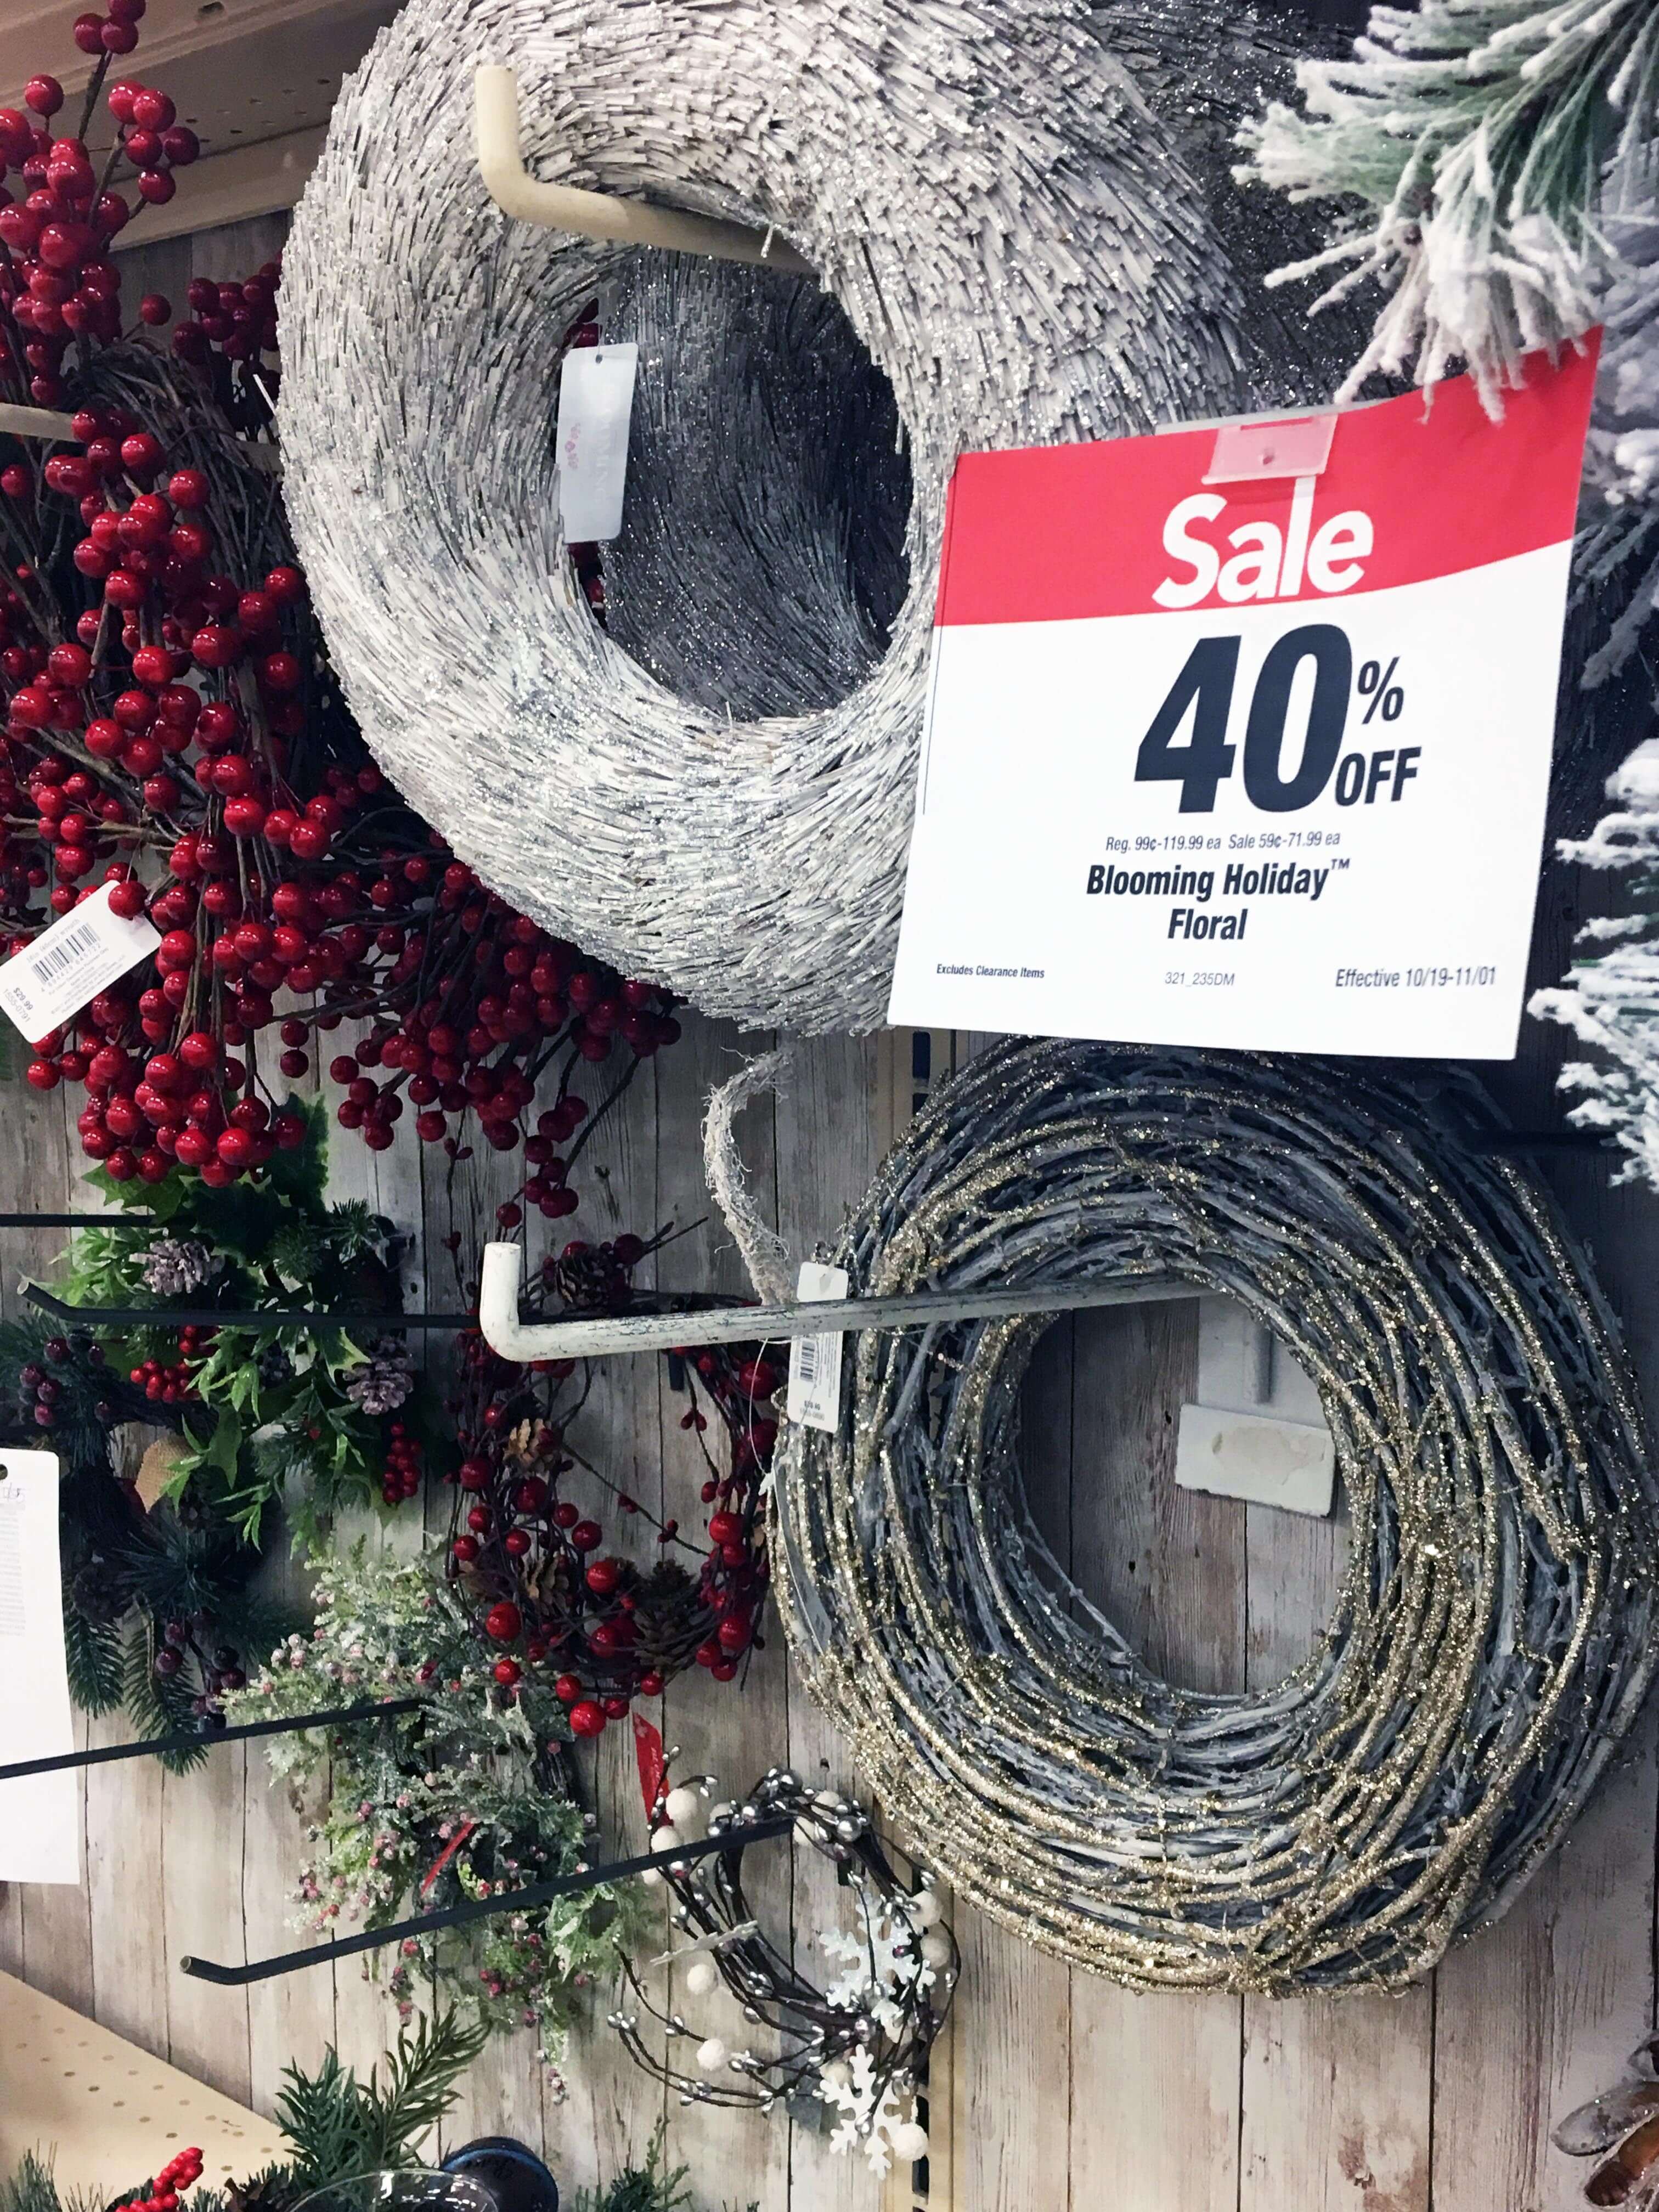 Never pay full price for seasonal decor at Joann Fabric and Crafts. Wait for a sale and coupon stack or clearance.